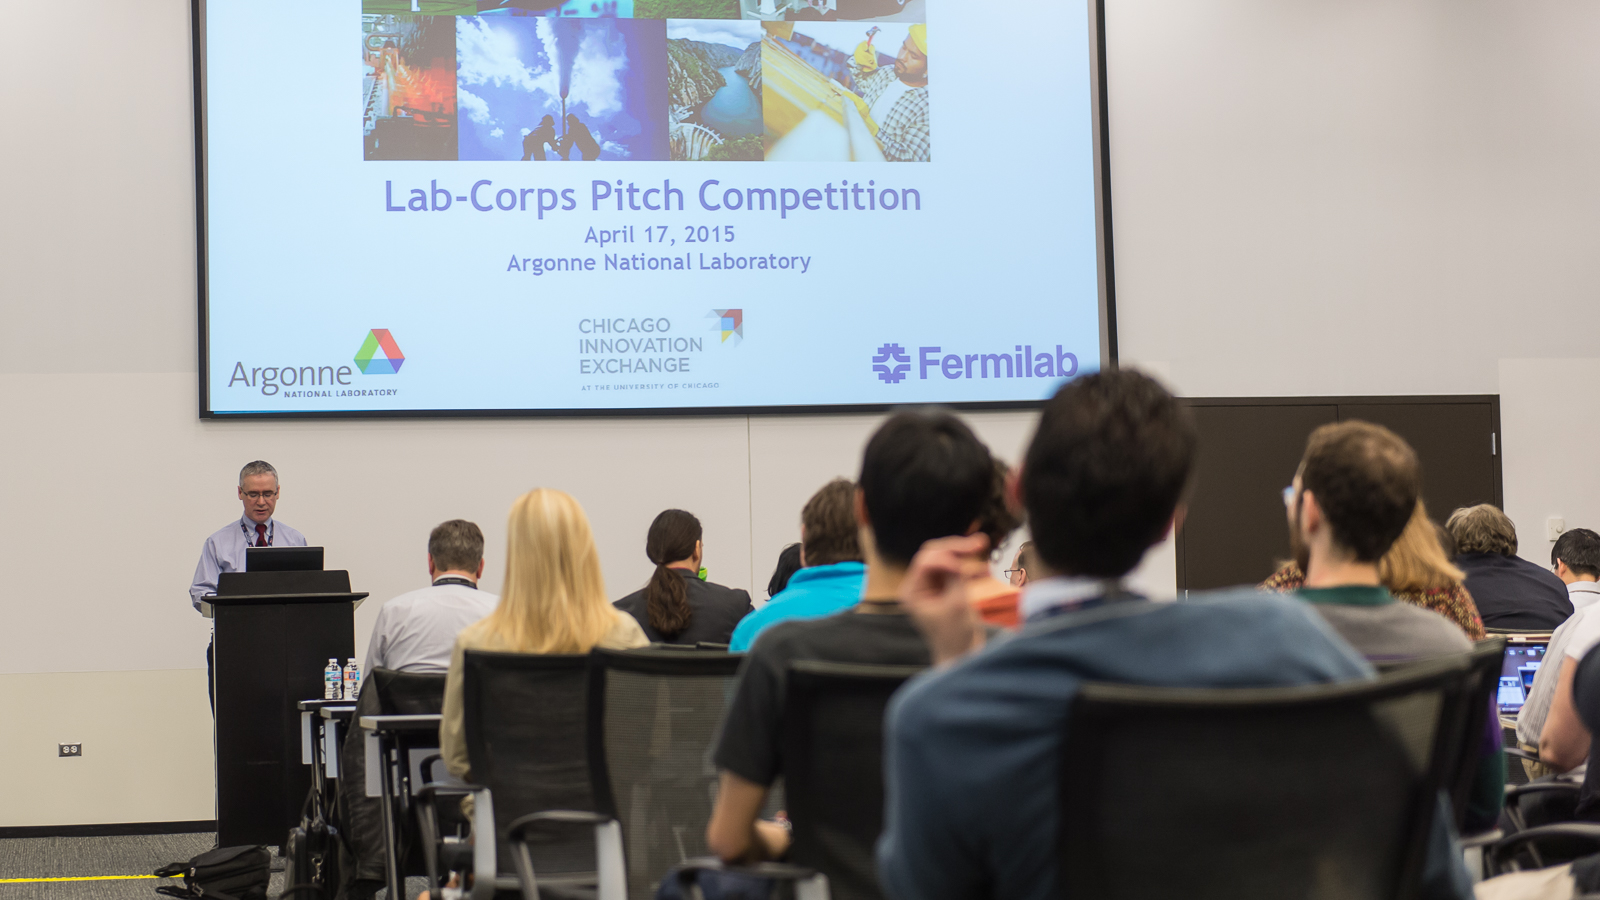 Seated participants listening to lecturer and viewing presentation at Lab-Corps, a U.S. Department of Energy program.